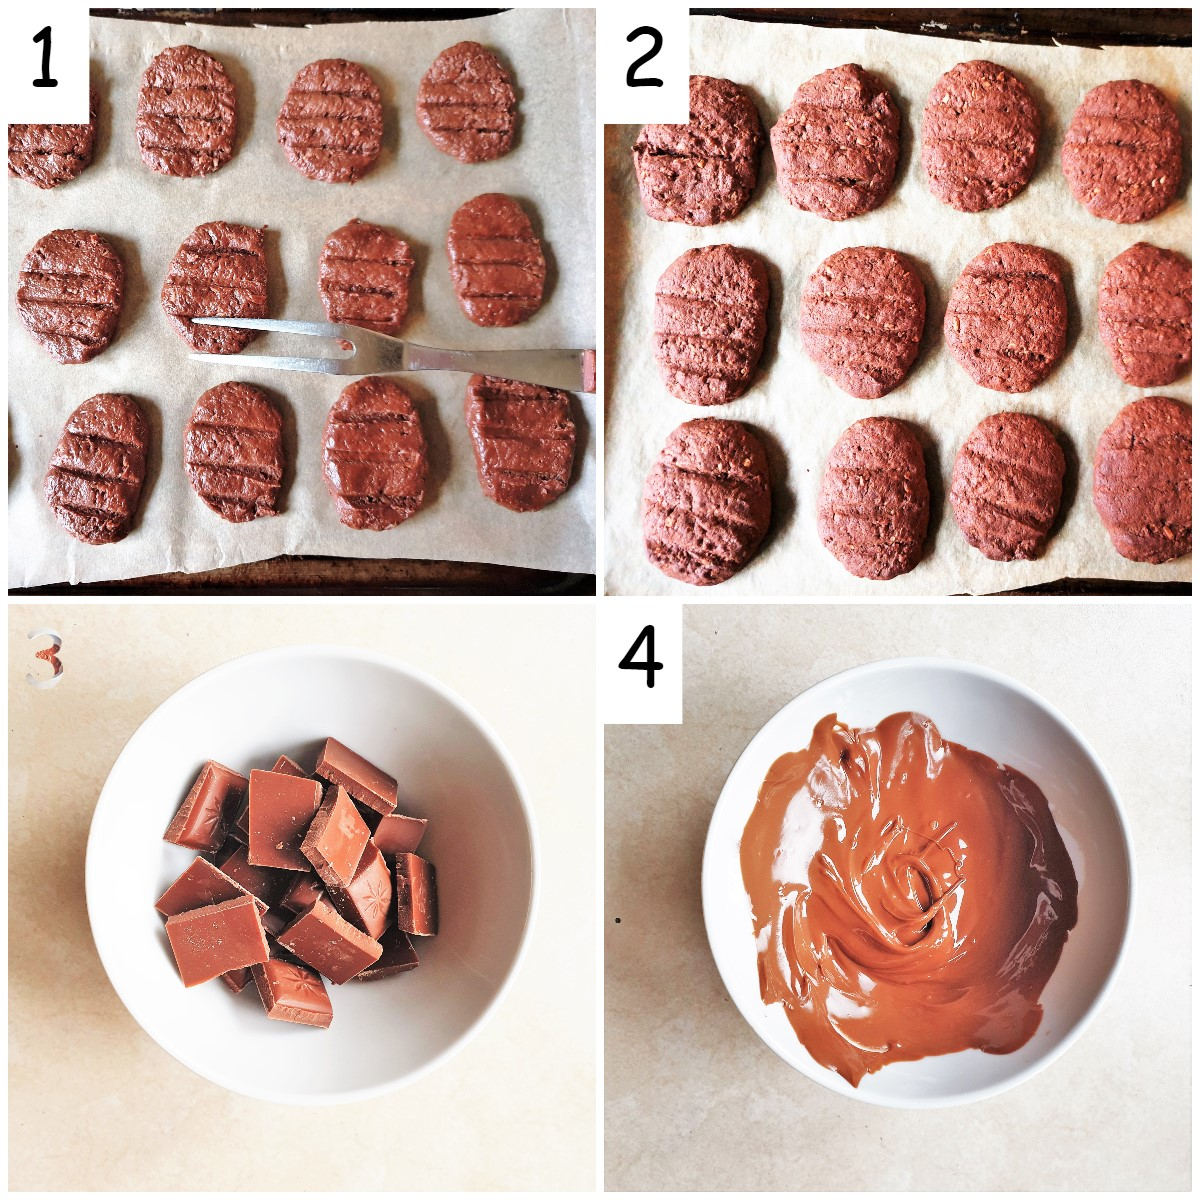 Steps for baking the biscuits and sandwiching with melted chocolate.